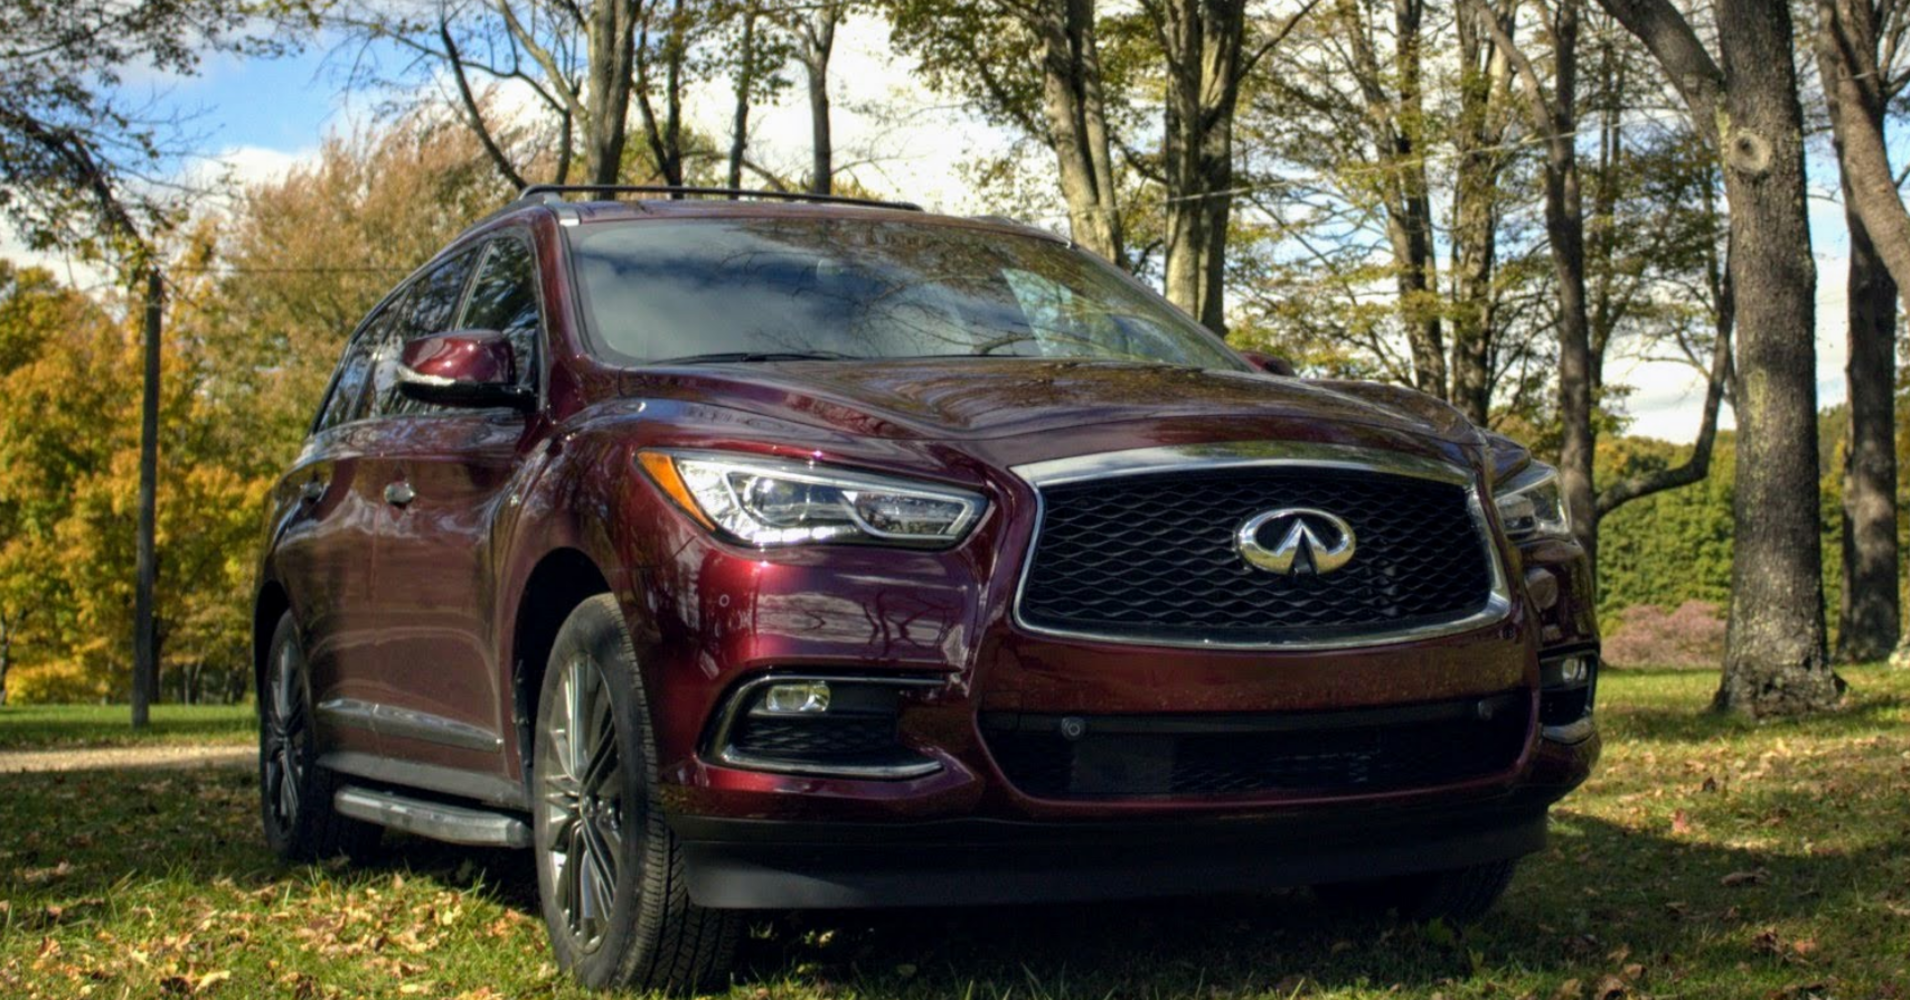 74 Best Review The Infiniti 2019 Qx60 Release Date Review Spesification for The Infiniti 2019 Qx60 Release Date Review